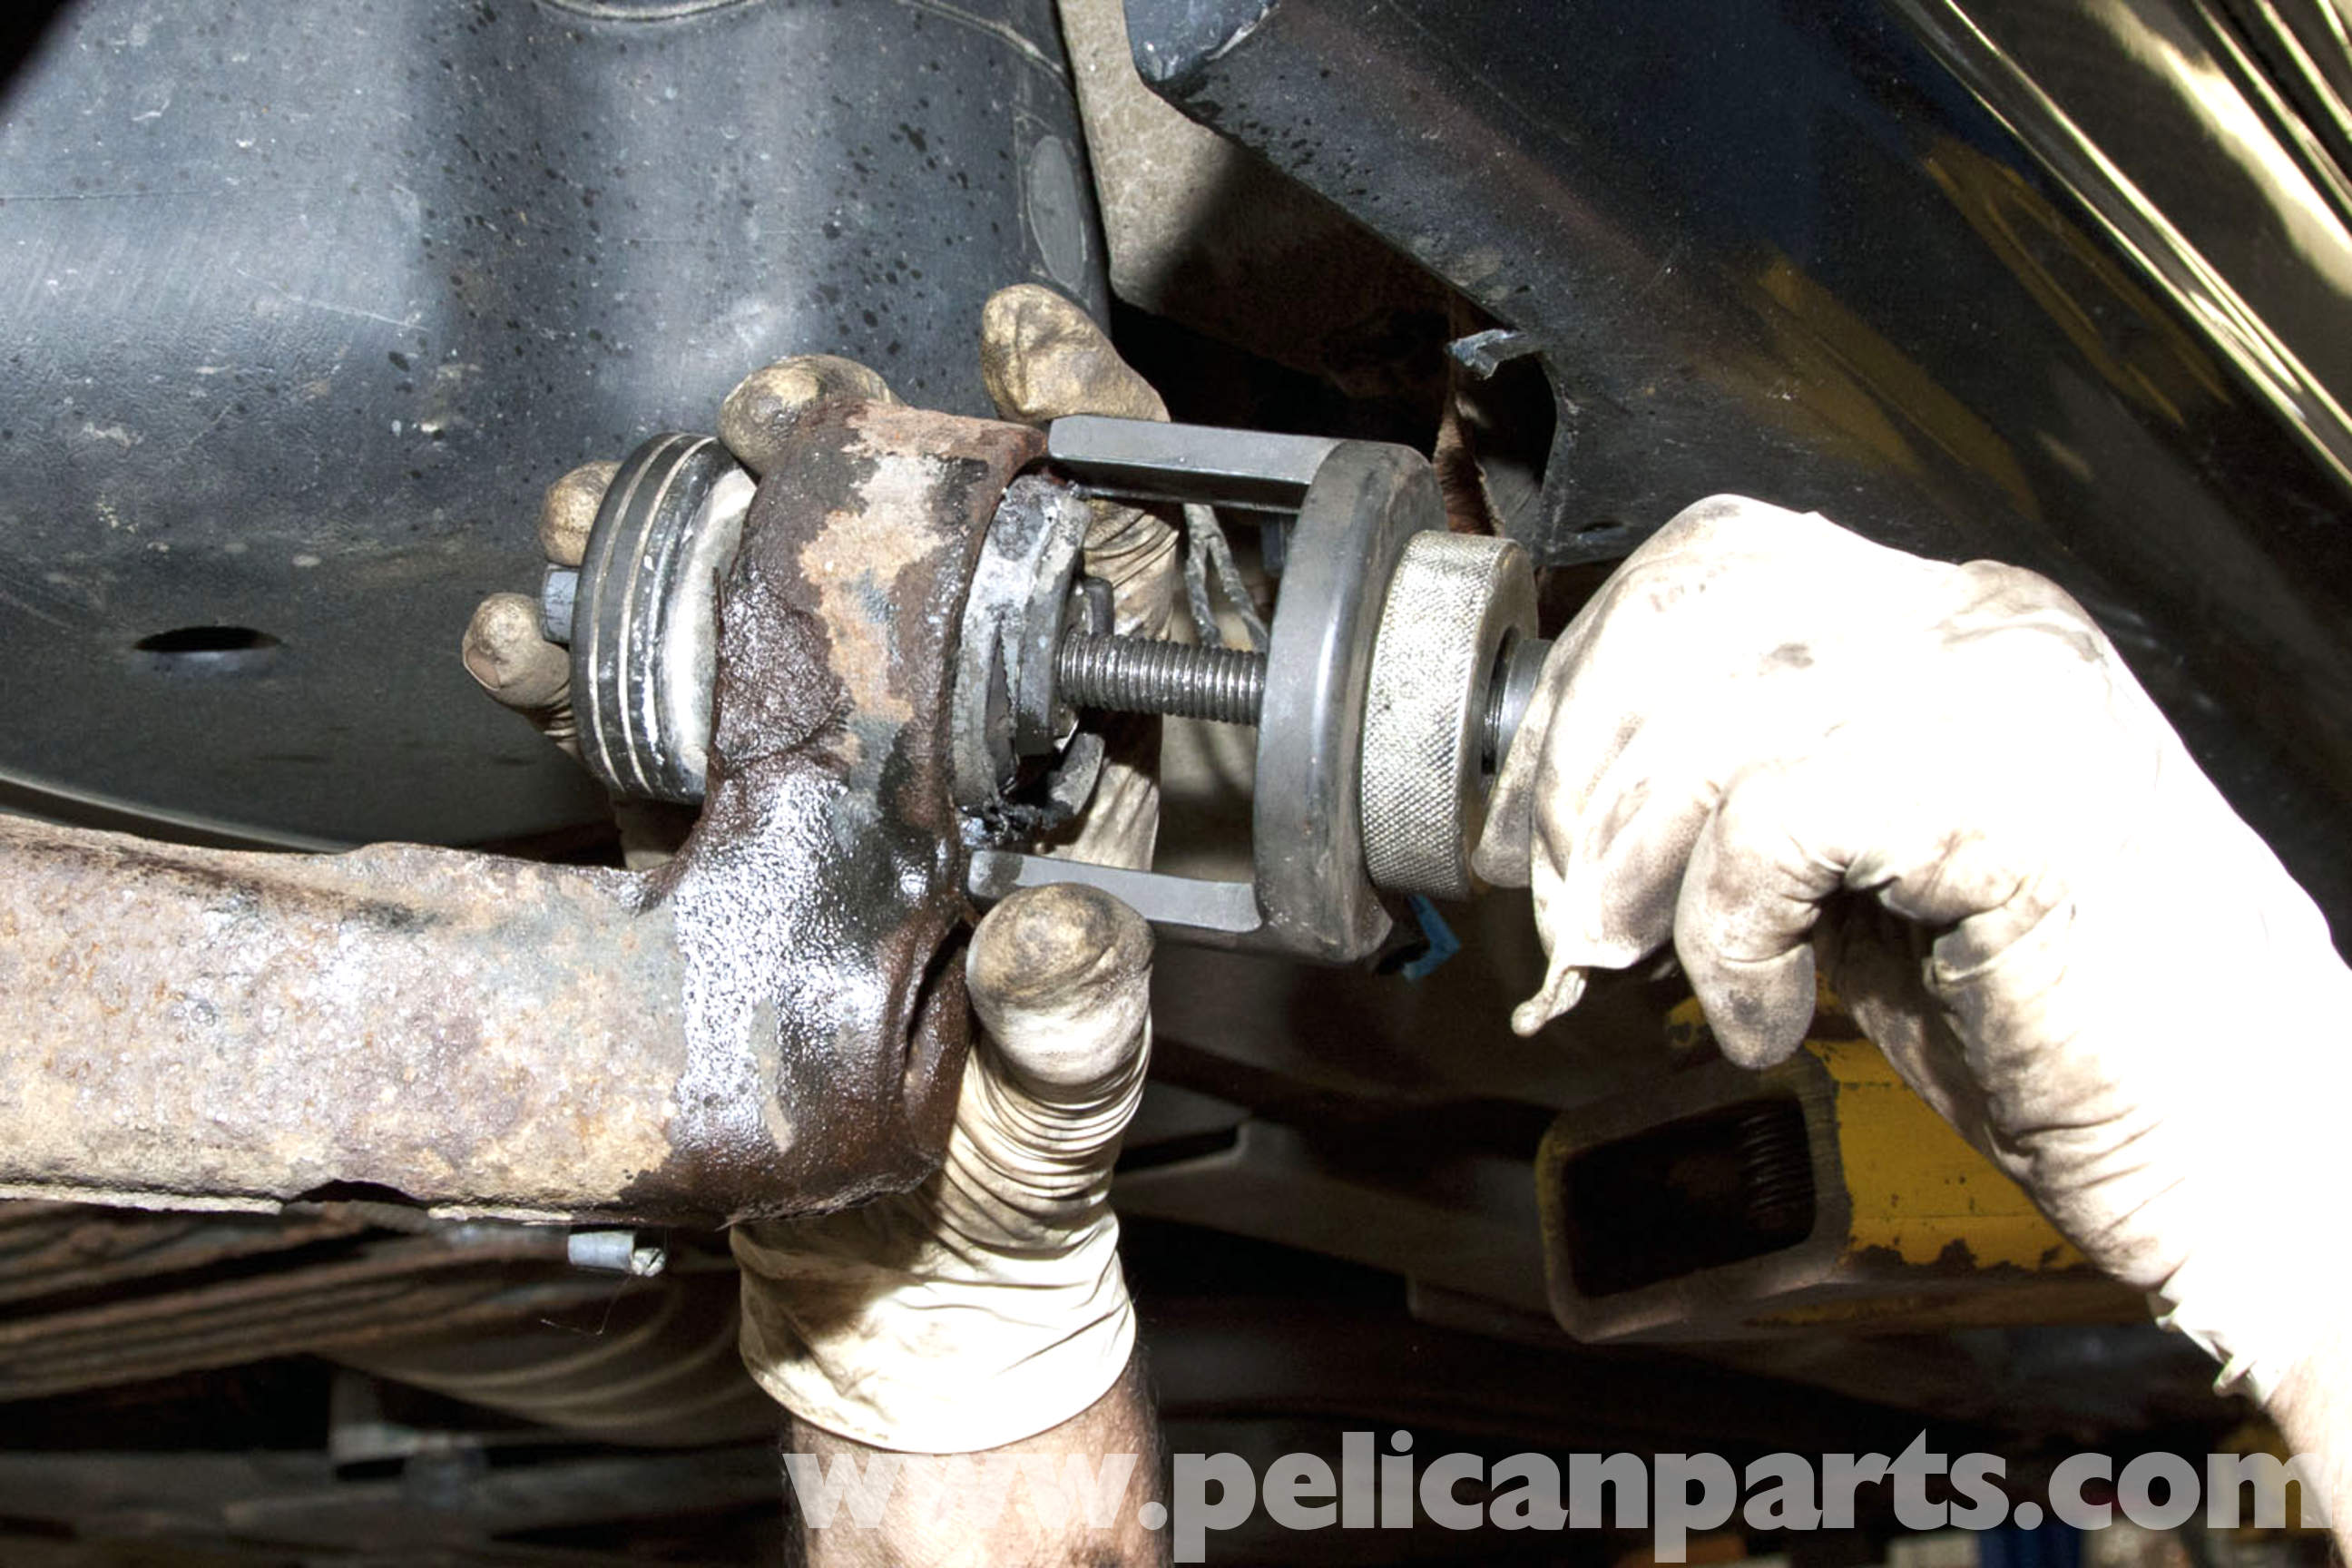 how to change right rear shock in a 2008 civic